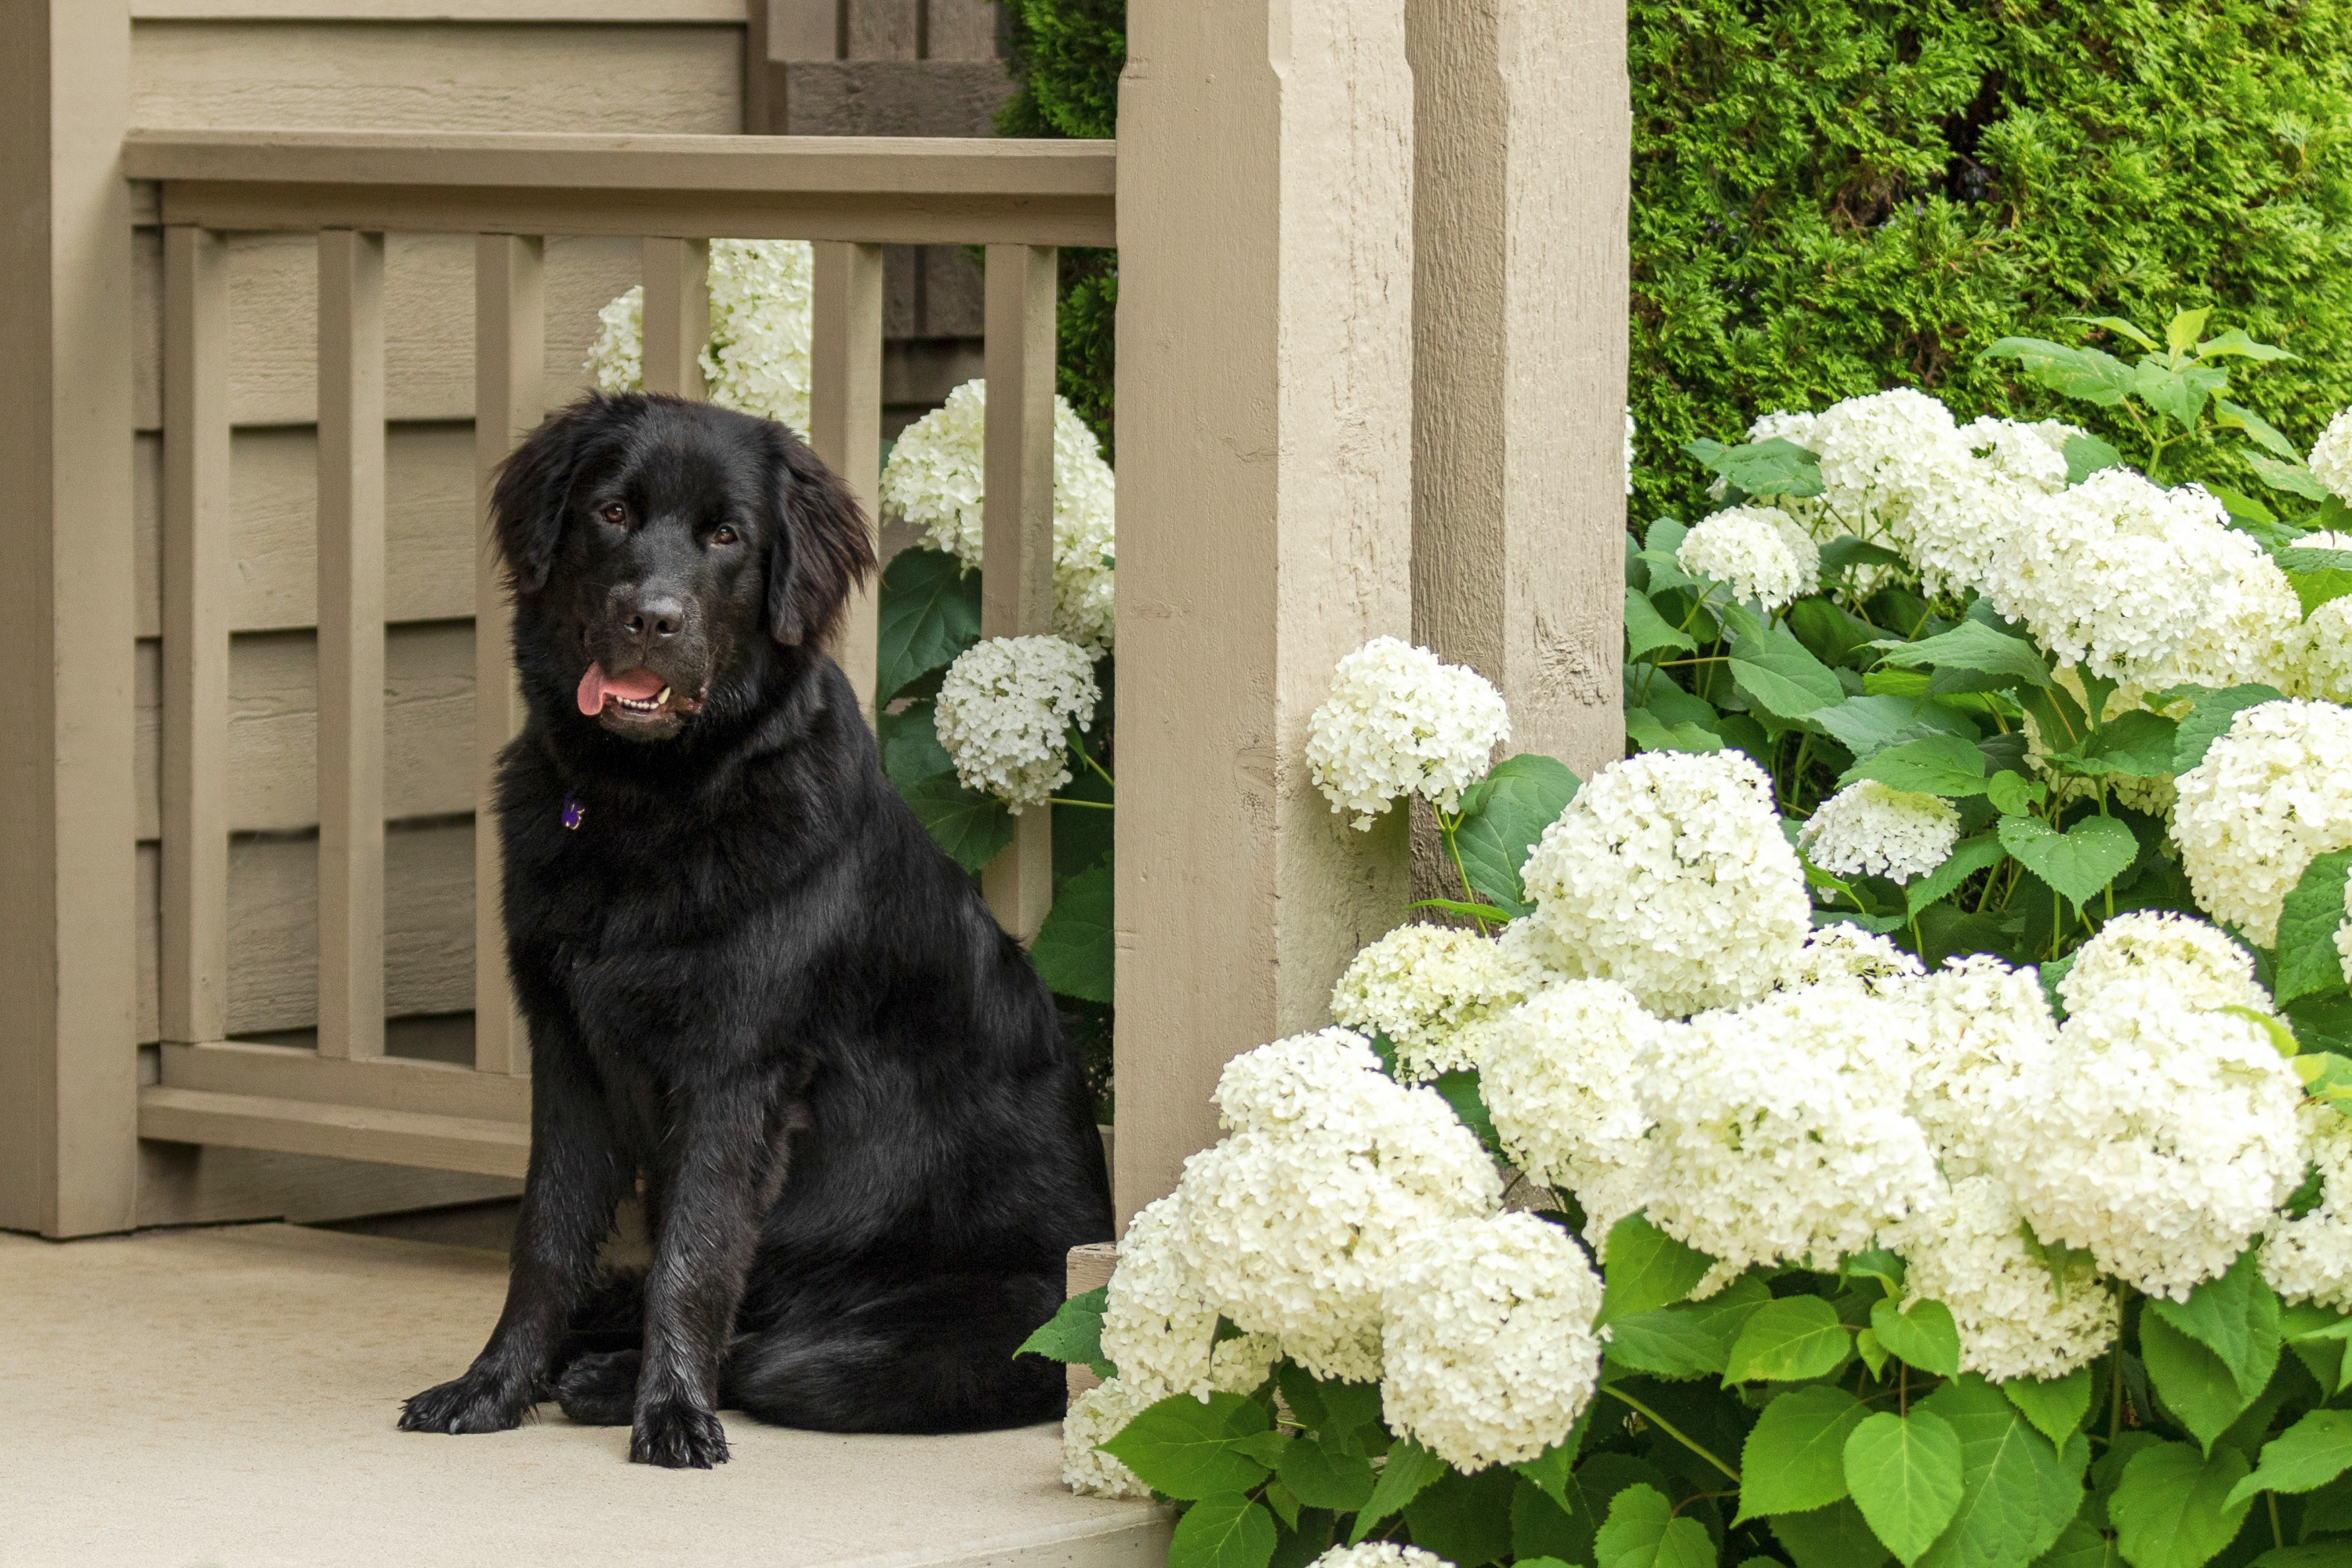 A black newfoundland puppy on a brown porch of a home next to a large white hydrangea plant.